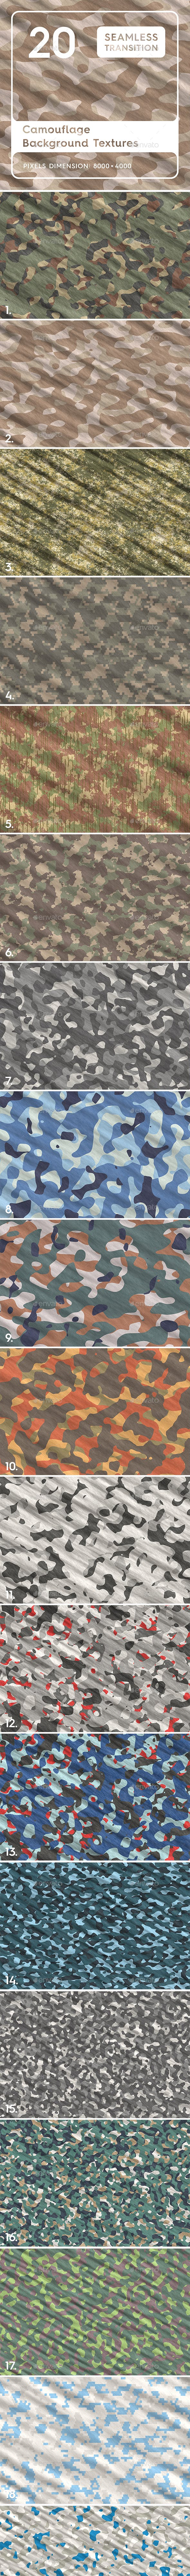 20 Camouflage Backgrounds Textures - 3DOcean Item for Sale